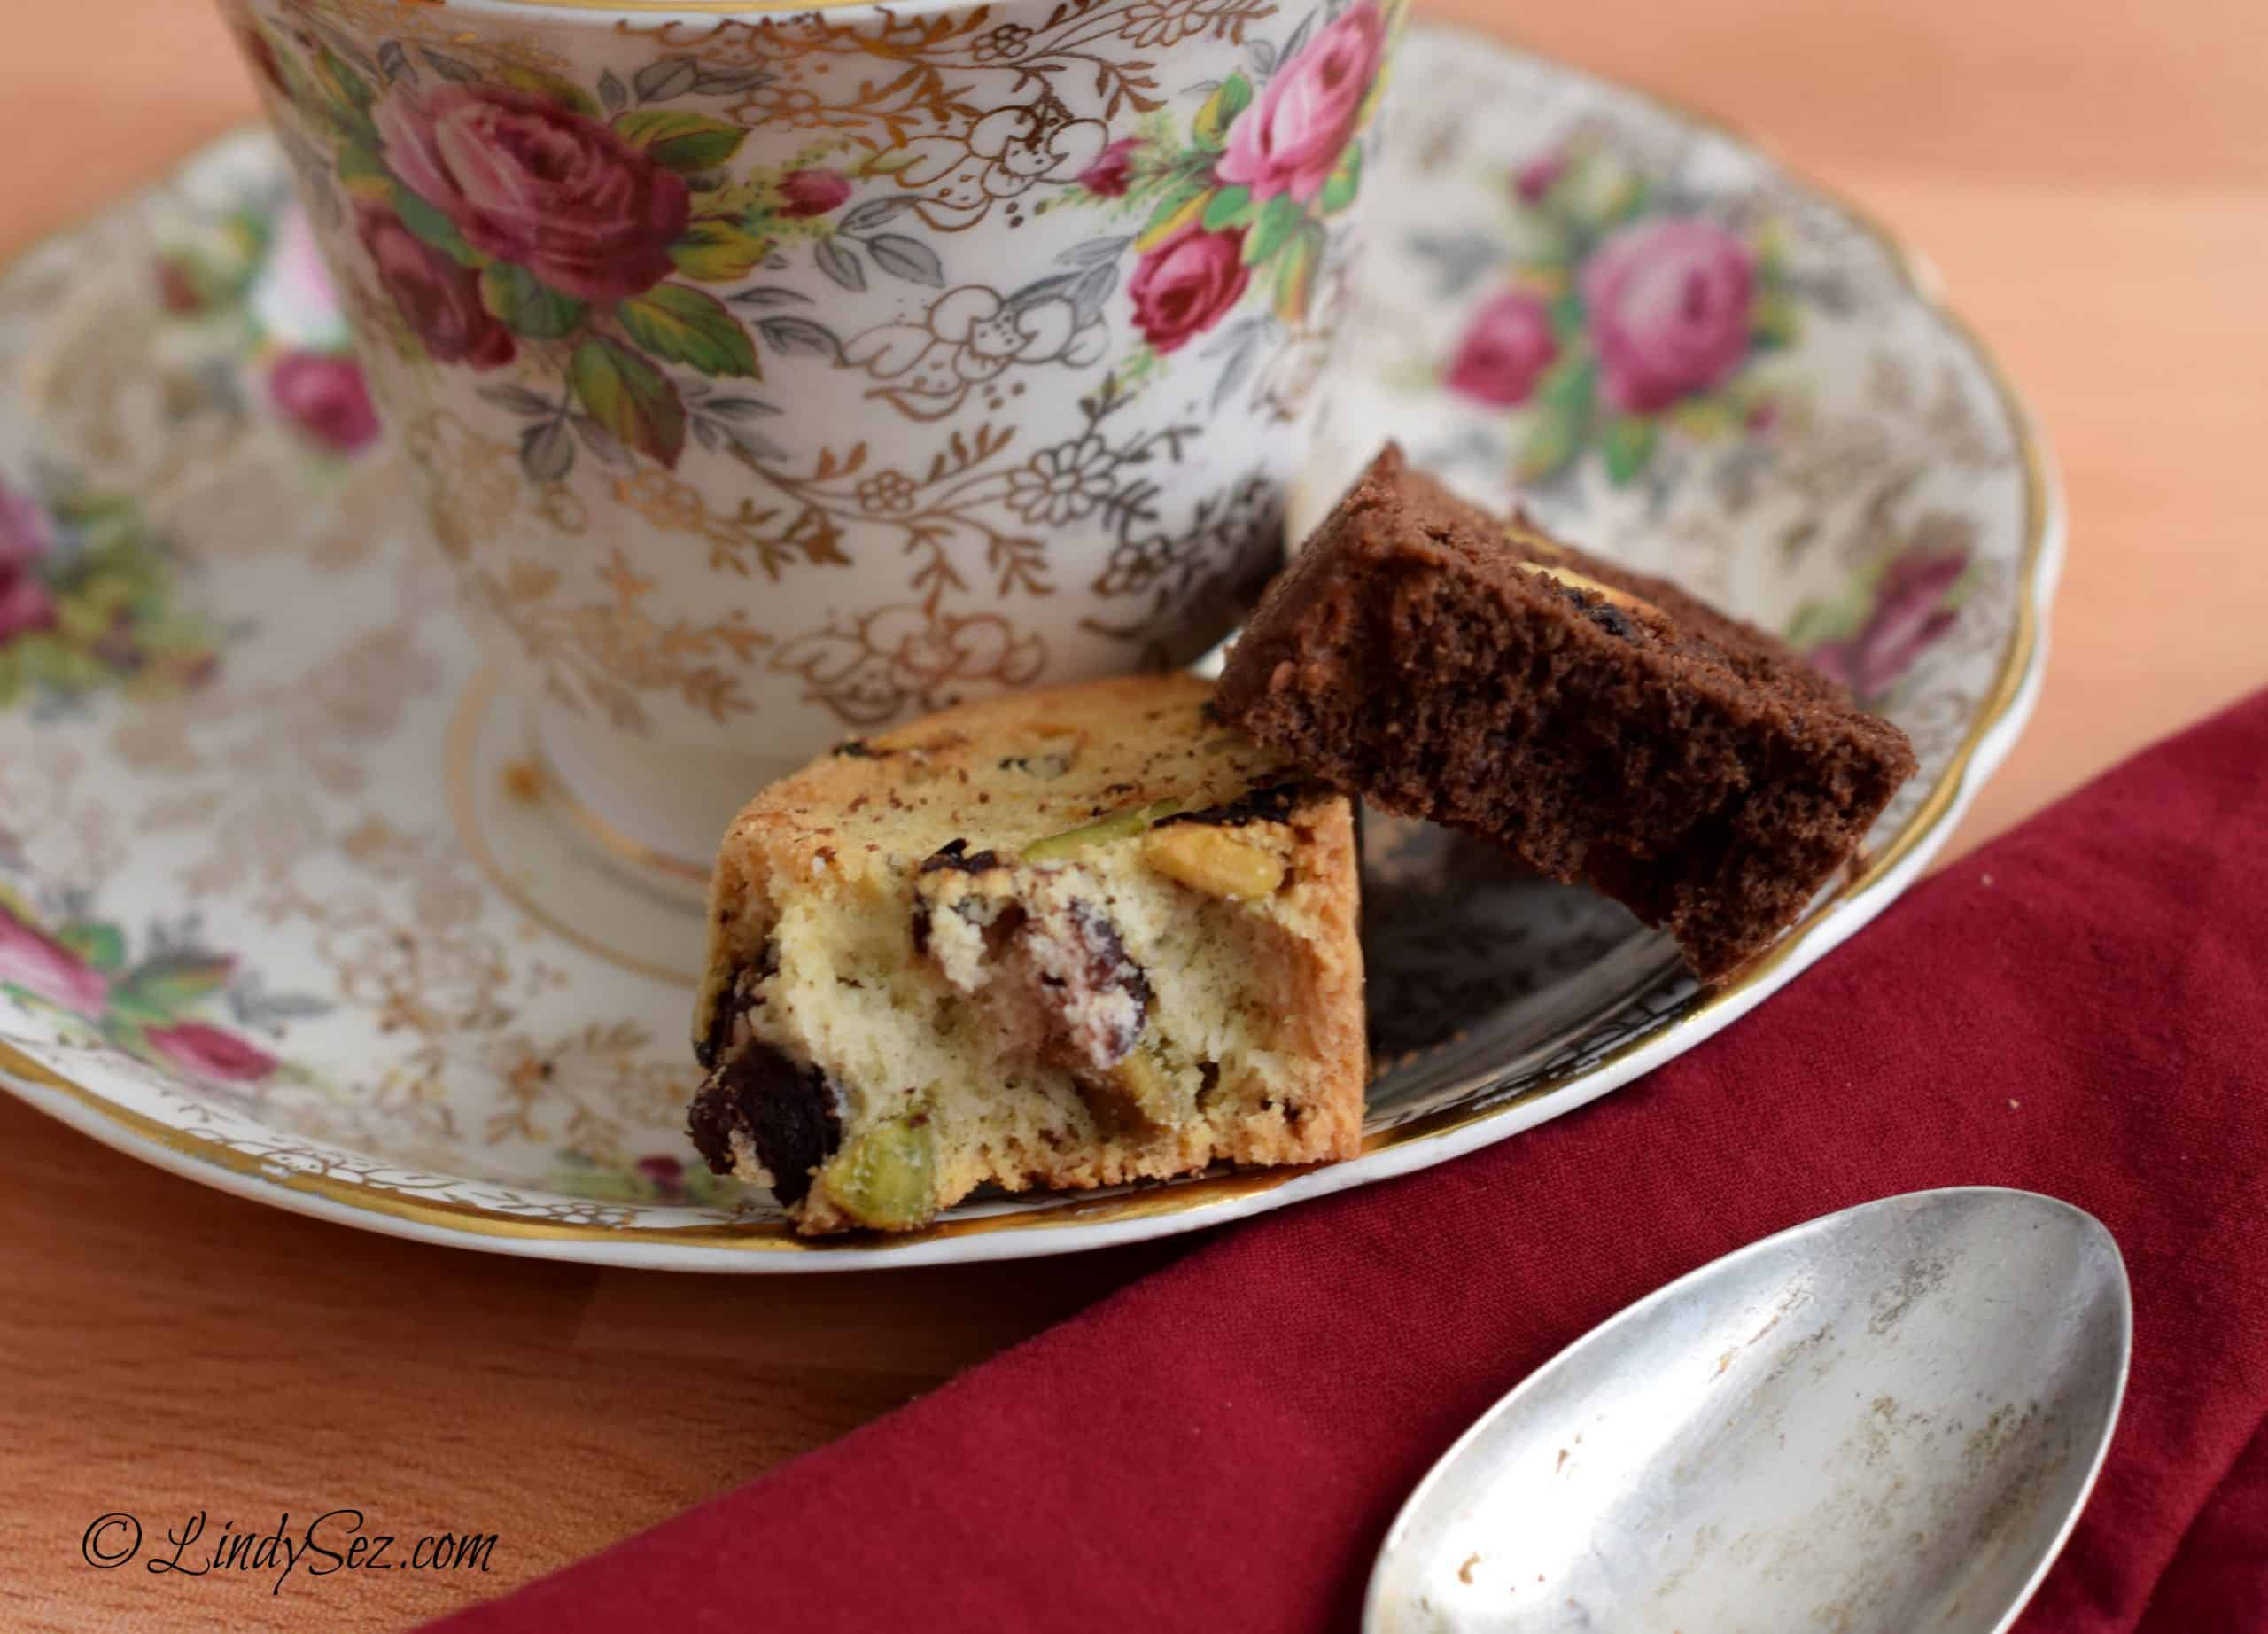 A close-up of the two different chocolate cherry biscotti